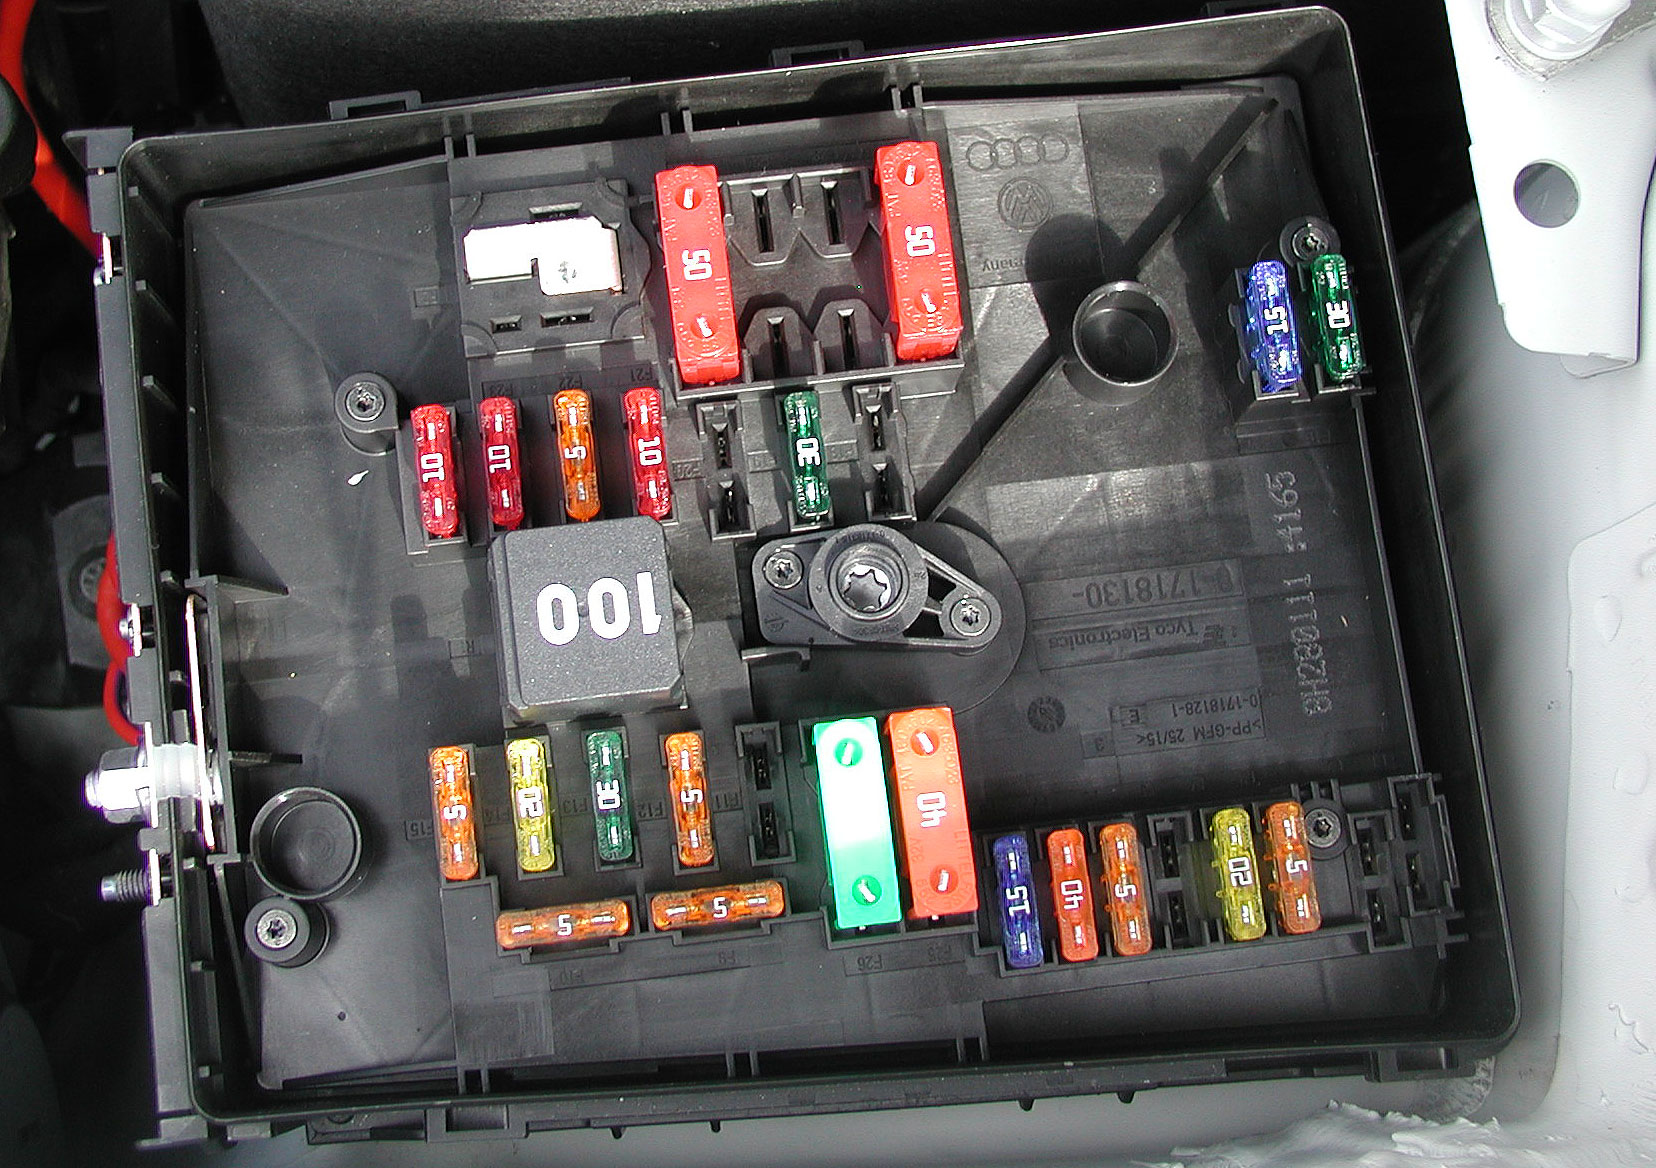 engineFuses2 golf mkv 1 9 tdi rcd 310 battery drain the volkswagen club of 2011 vw golf tdi fuse box diagram at soozxer.org